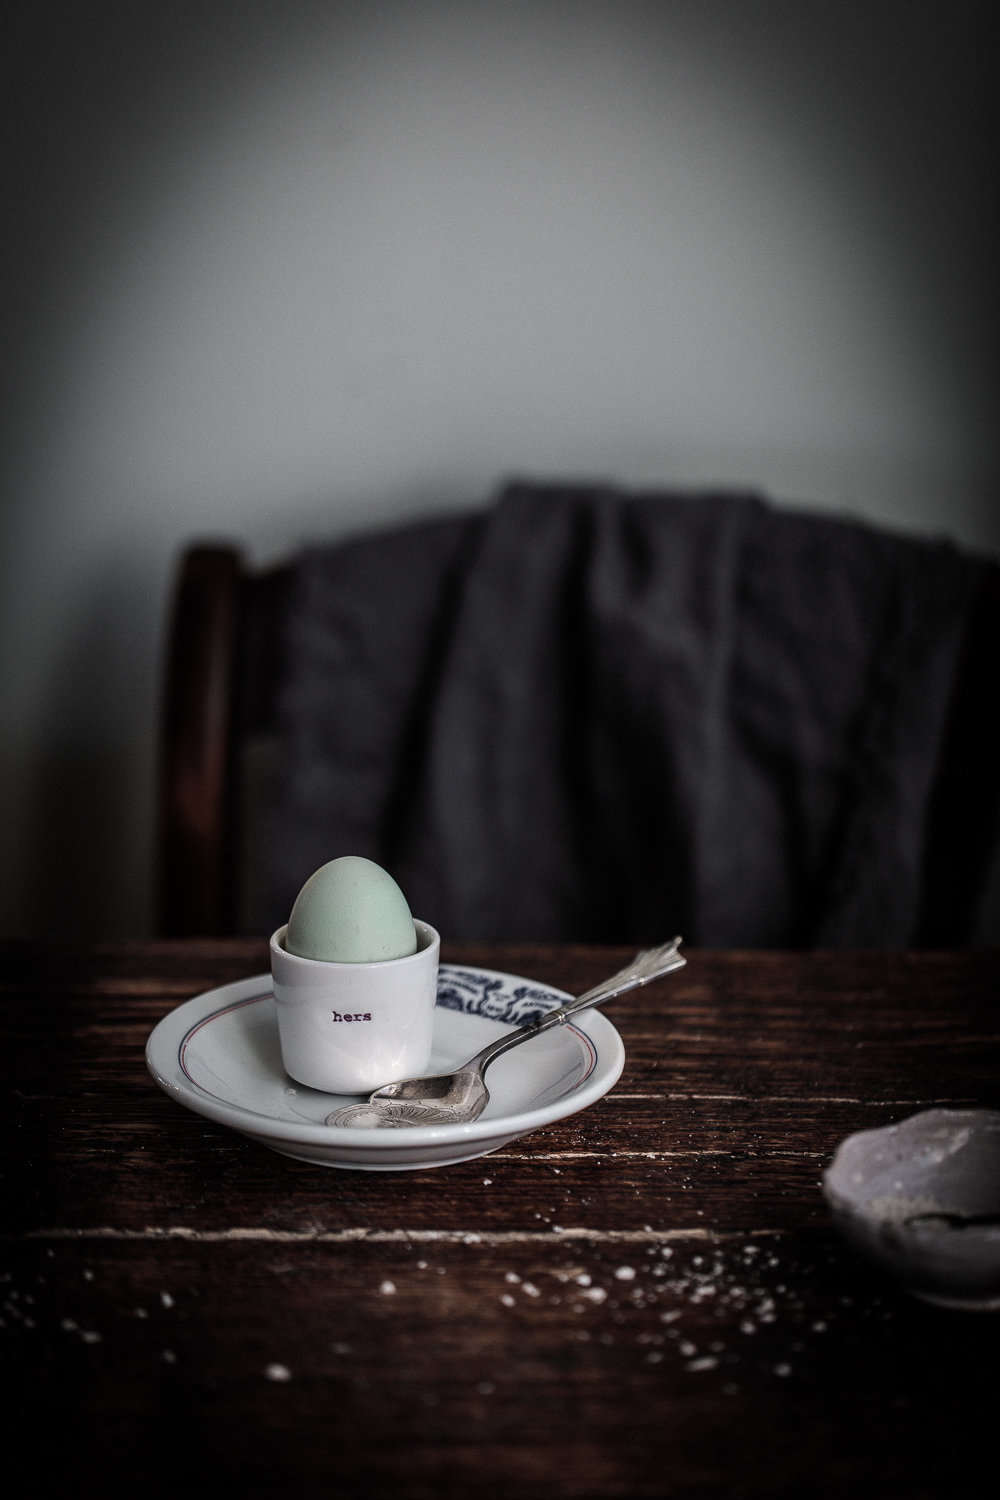 Egg by Cedric | Anisa Sabet | The Macadames-4-1